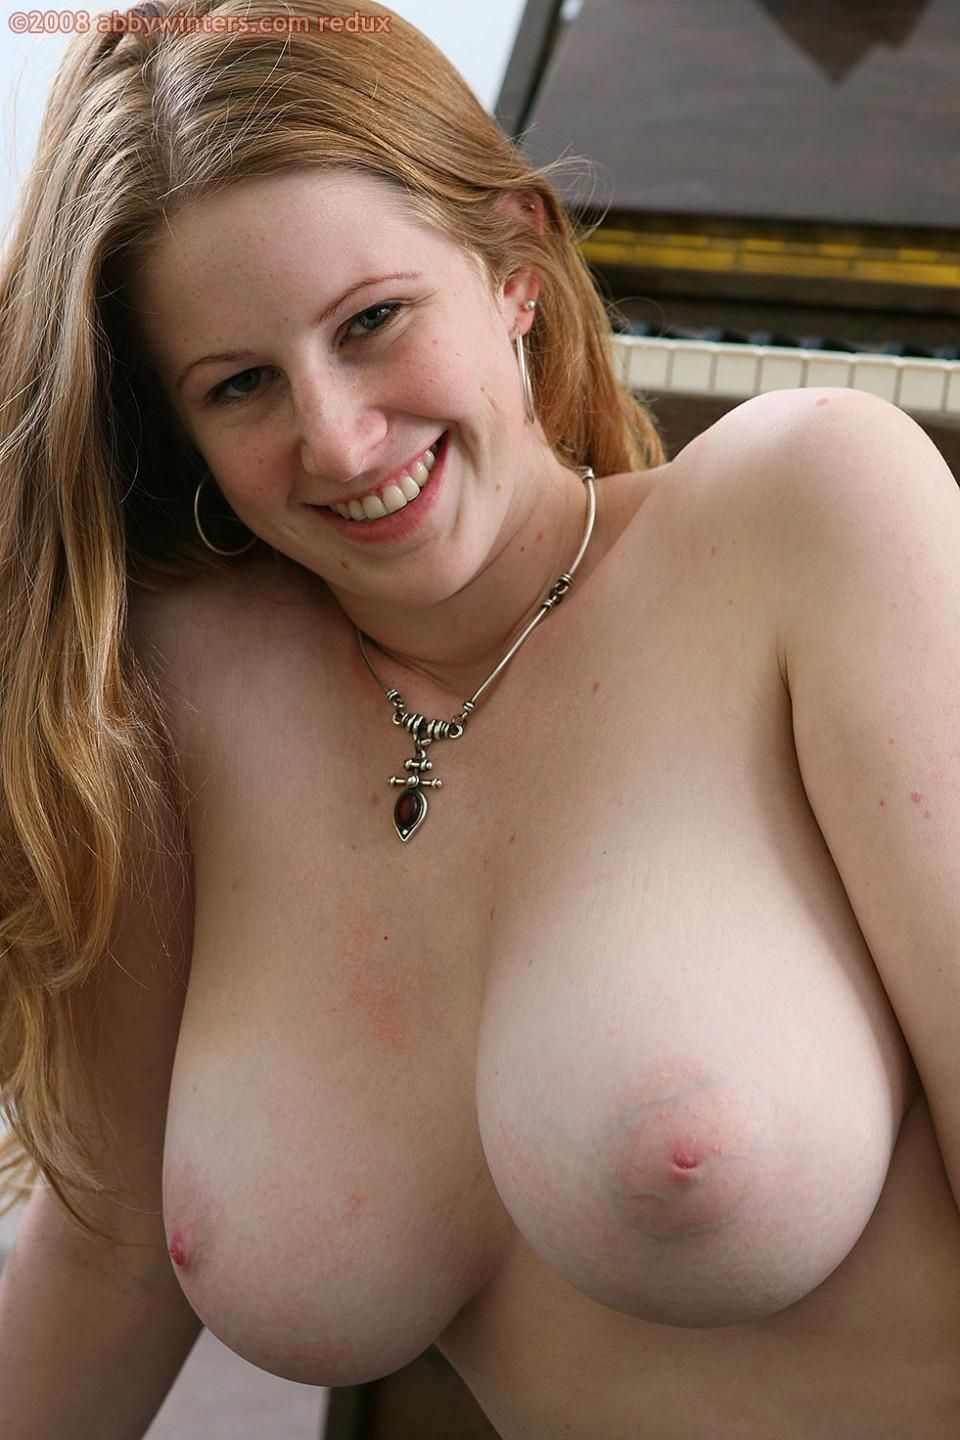 Redhead Milf On Juicyboobs